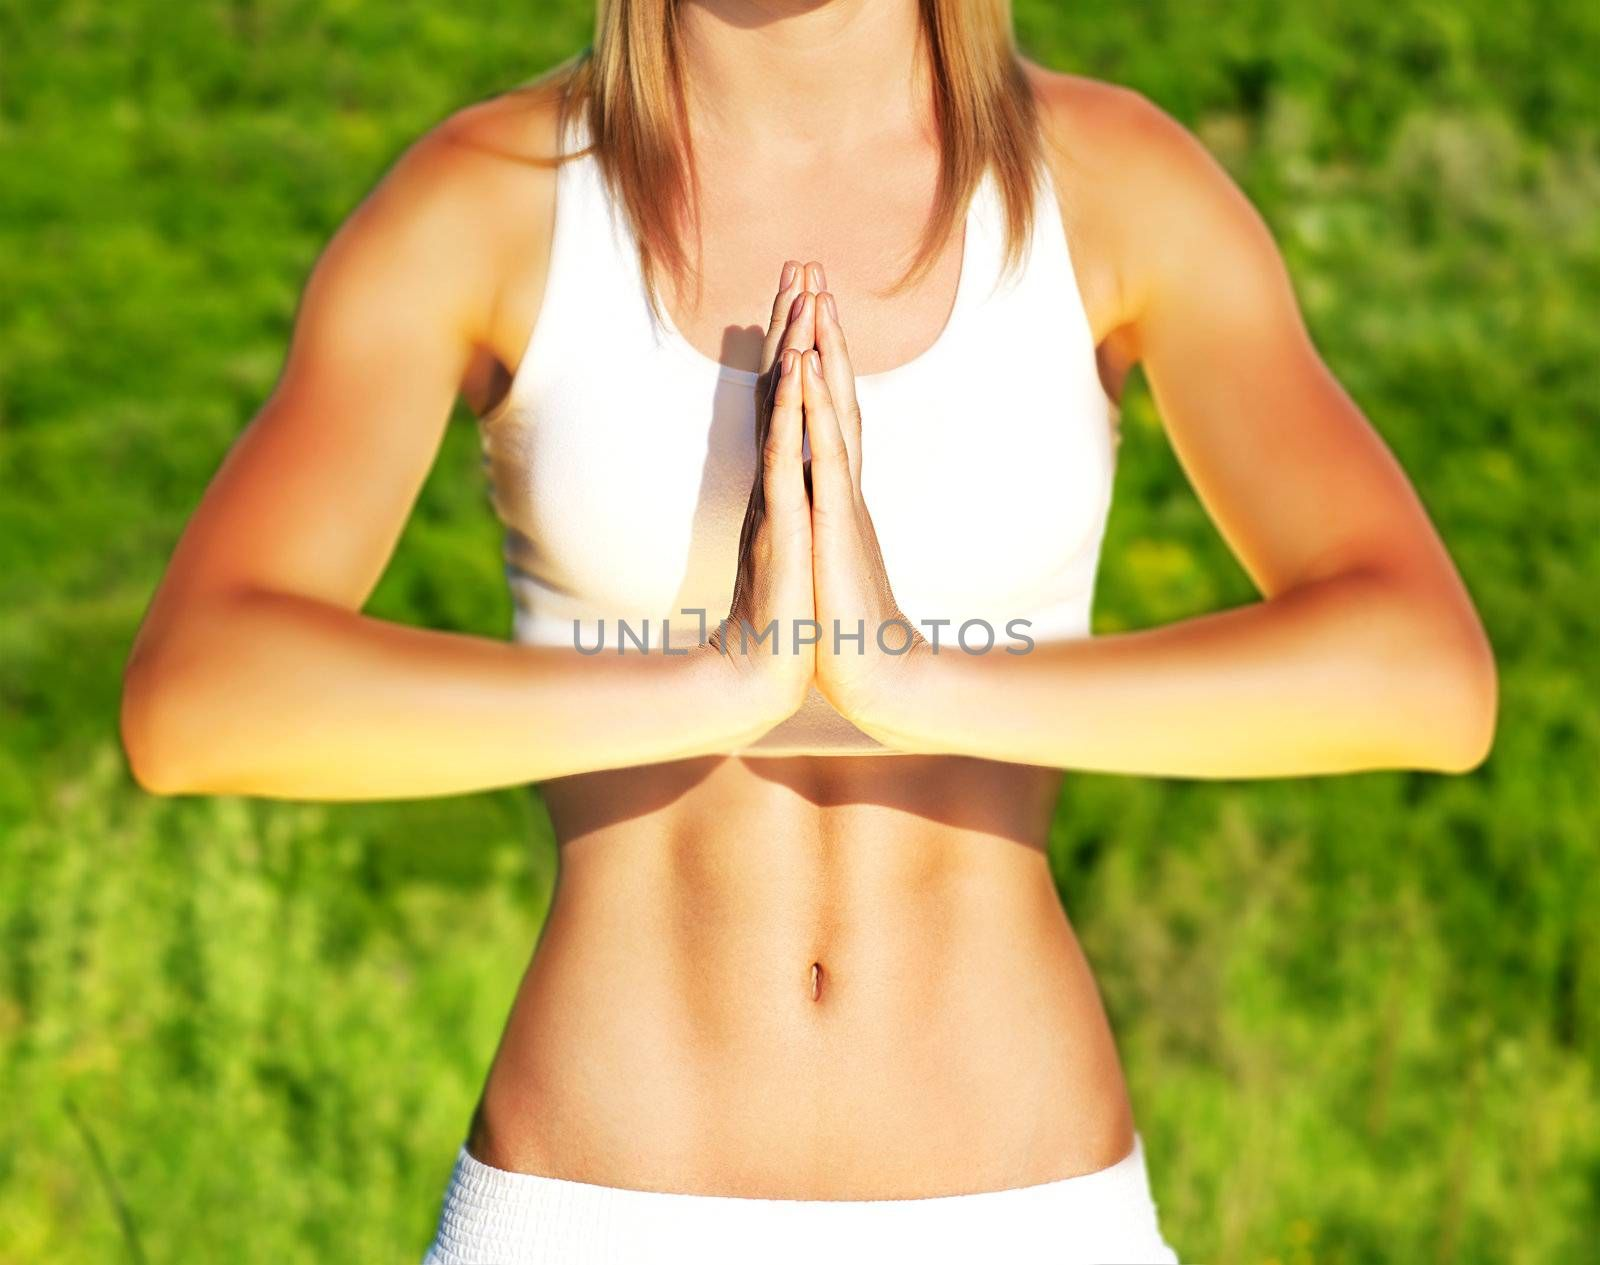 Peaceful yoga outdoor, healthy sporty female body over green natural background, body care & fitness concept